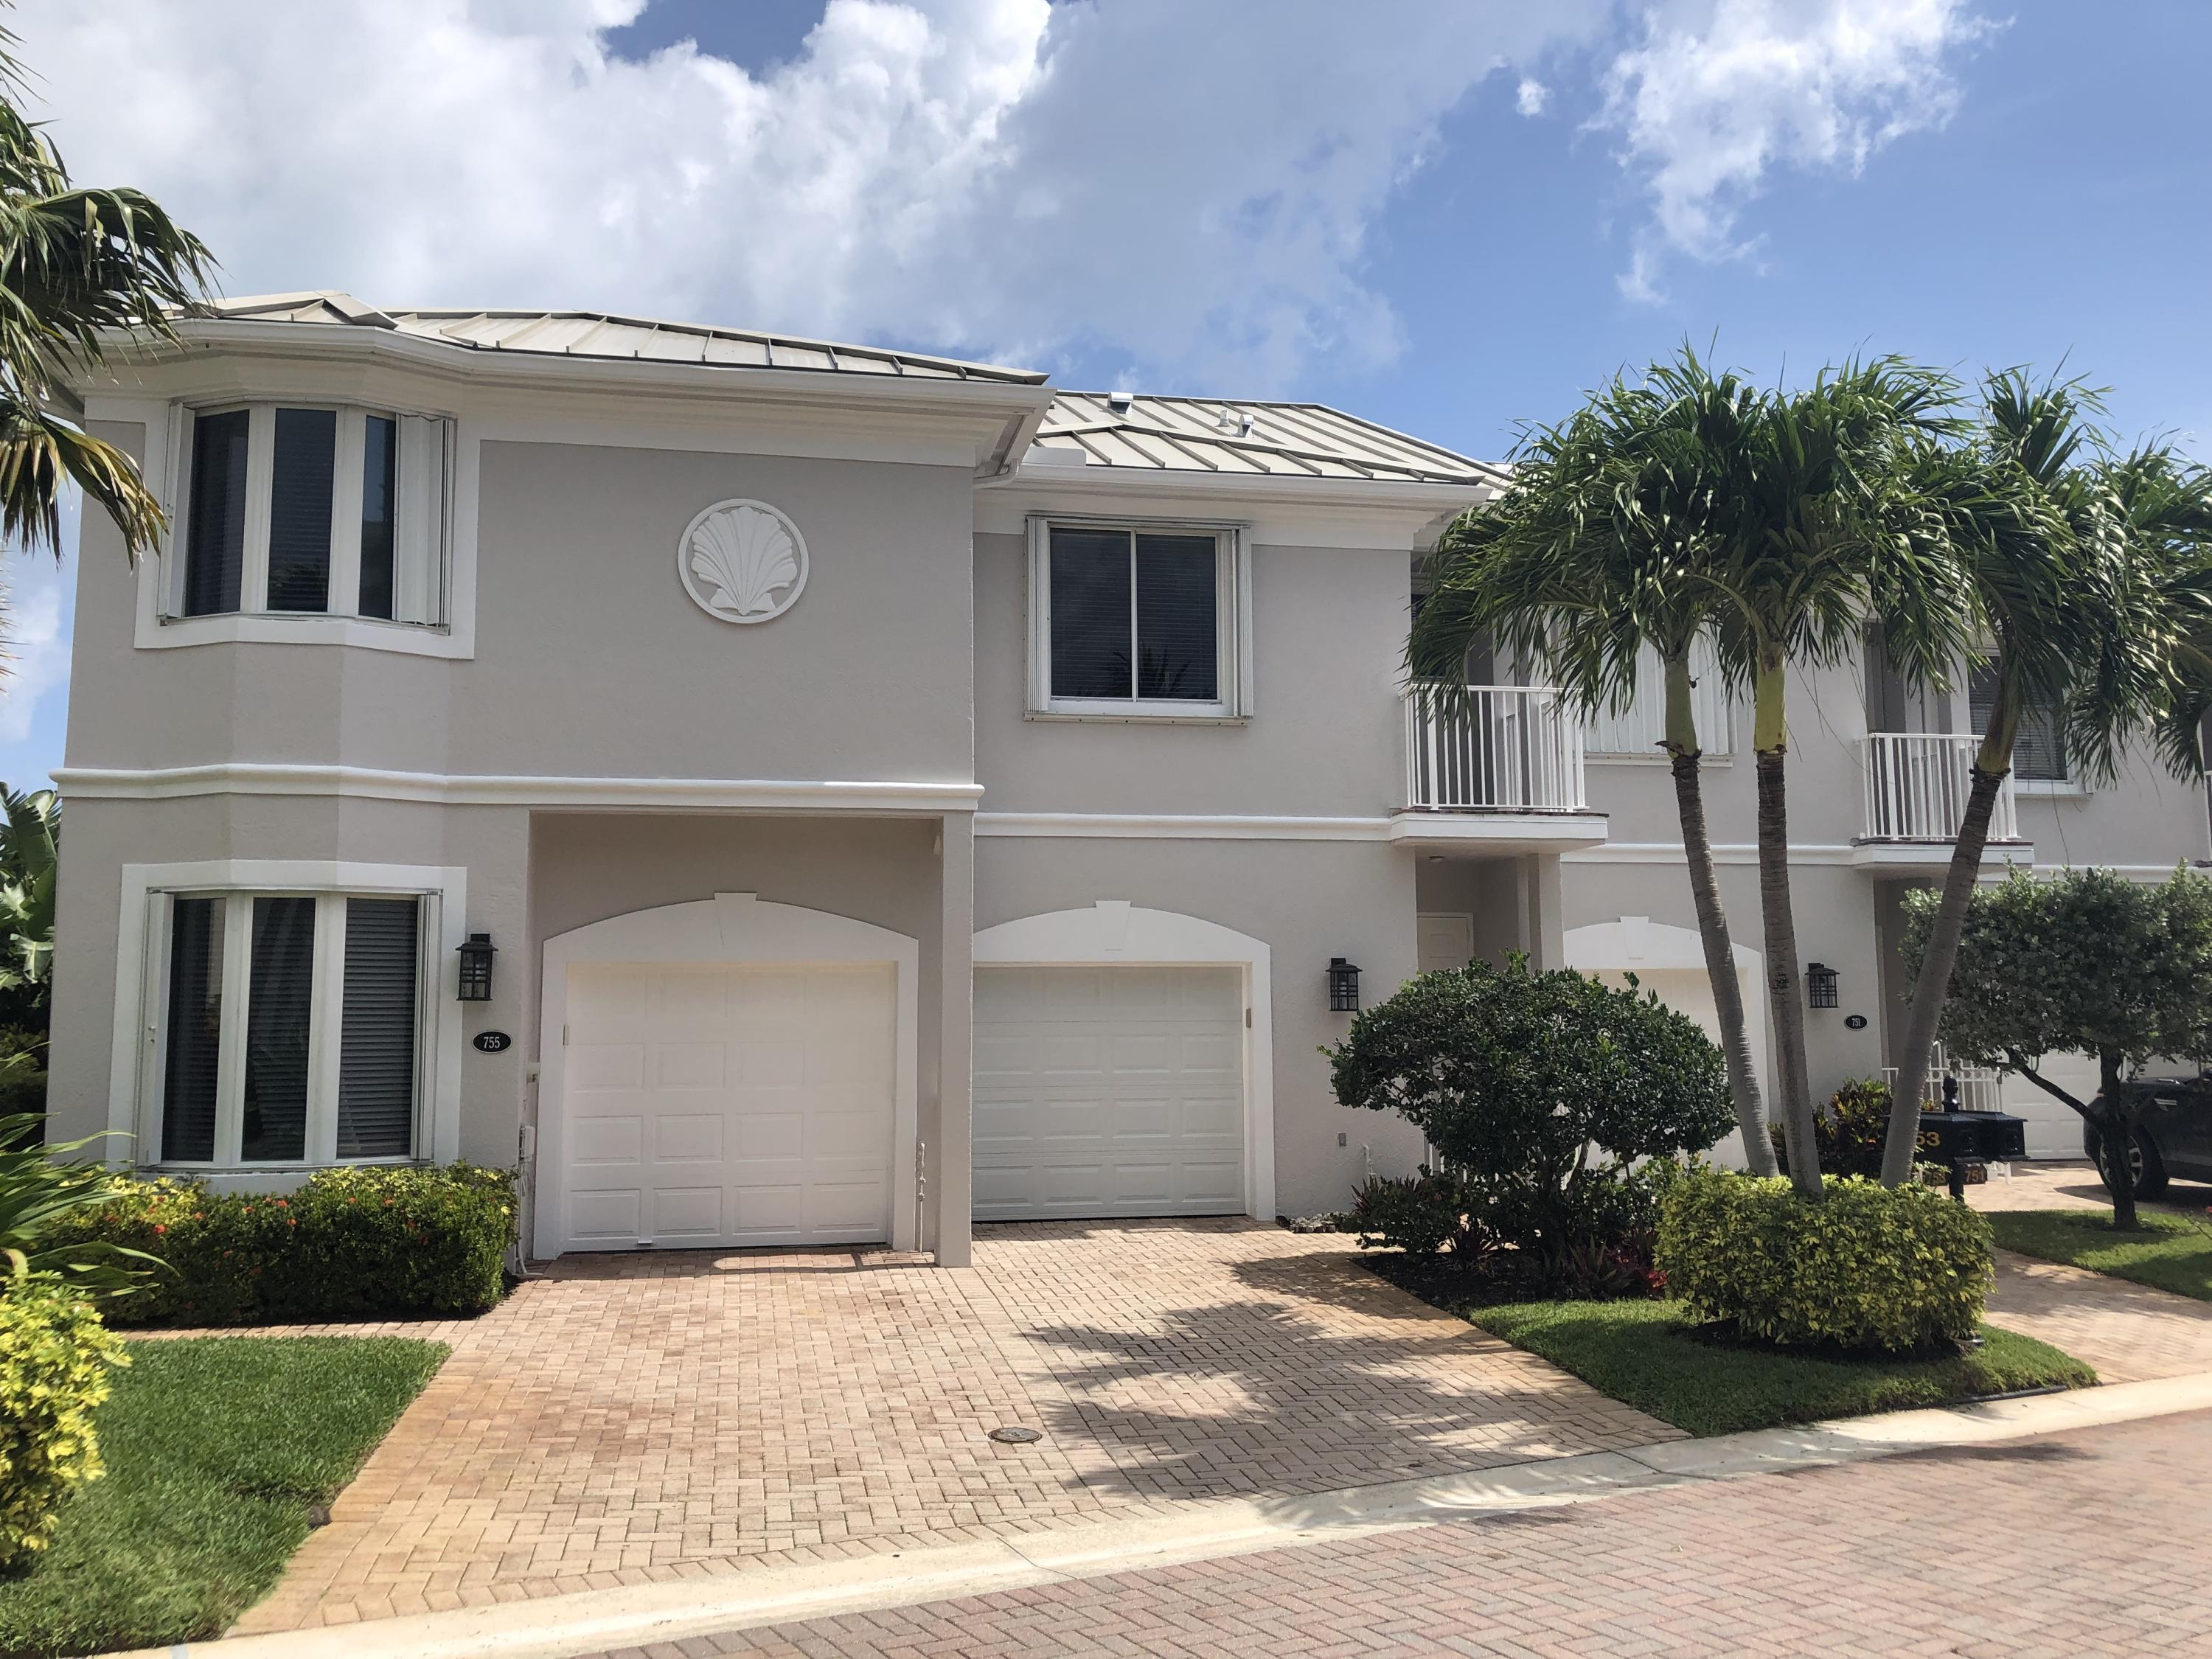 Photo of 753 Seaview Drive, Juno Beach, FL 33408